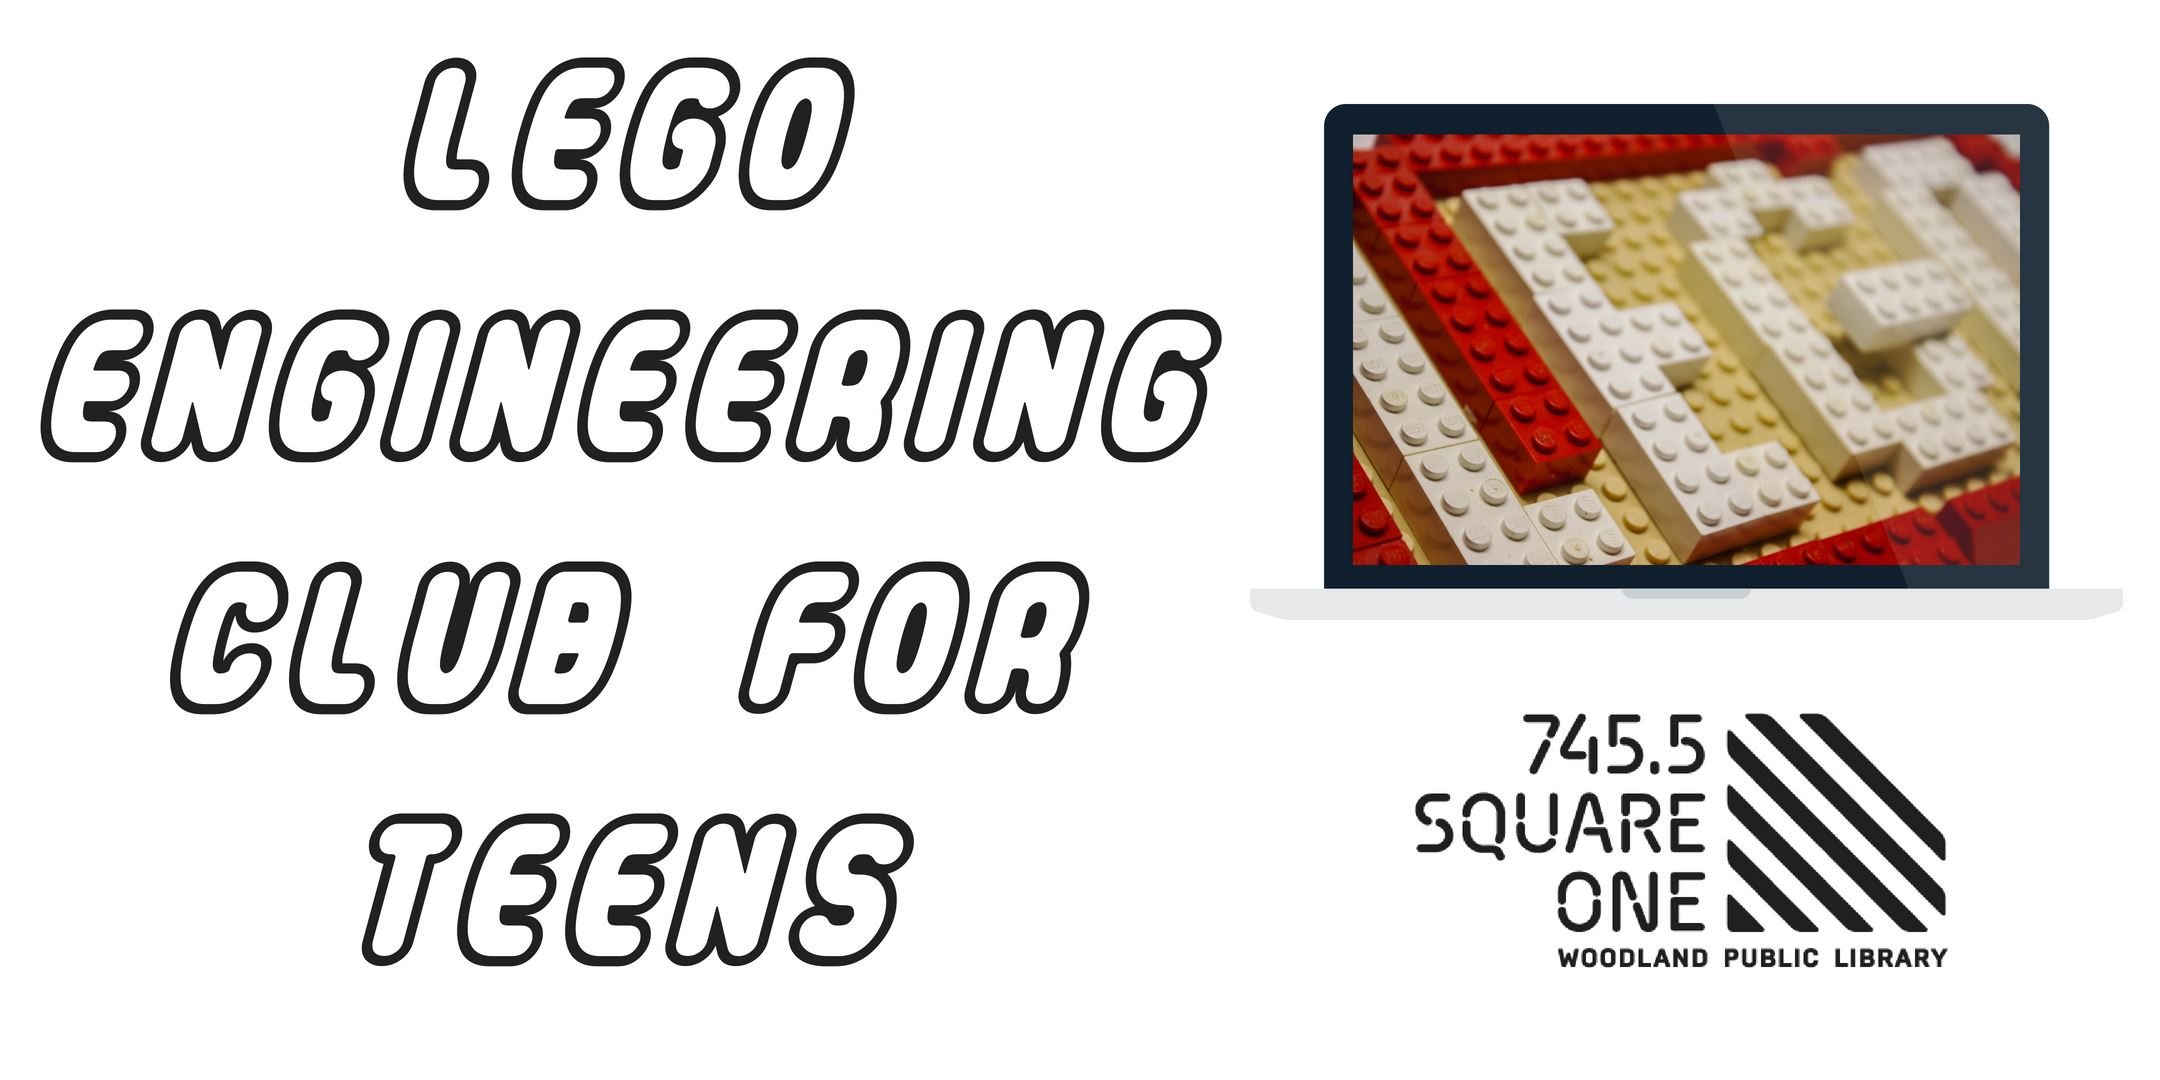 Lego Flyer Website